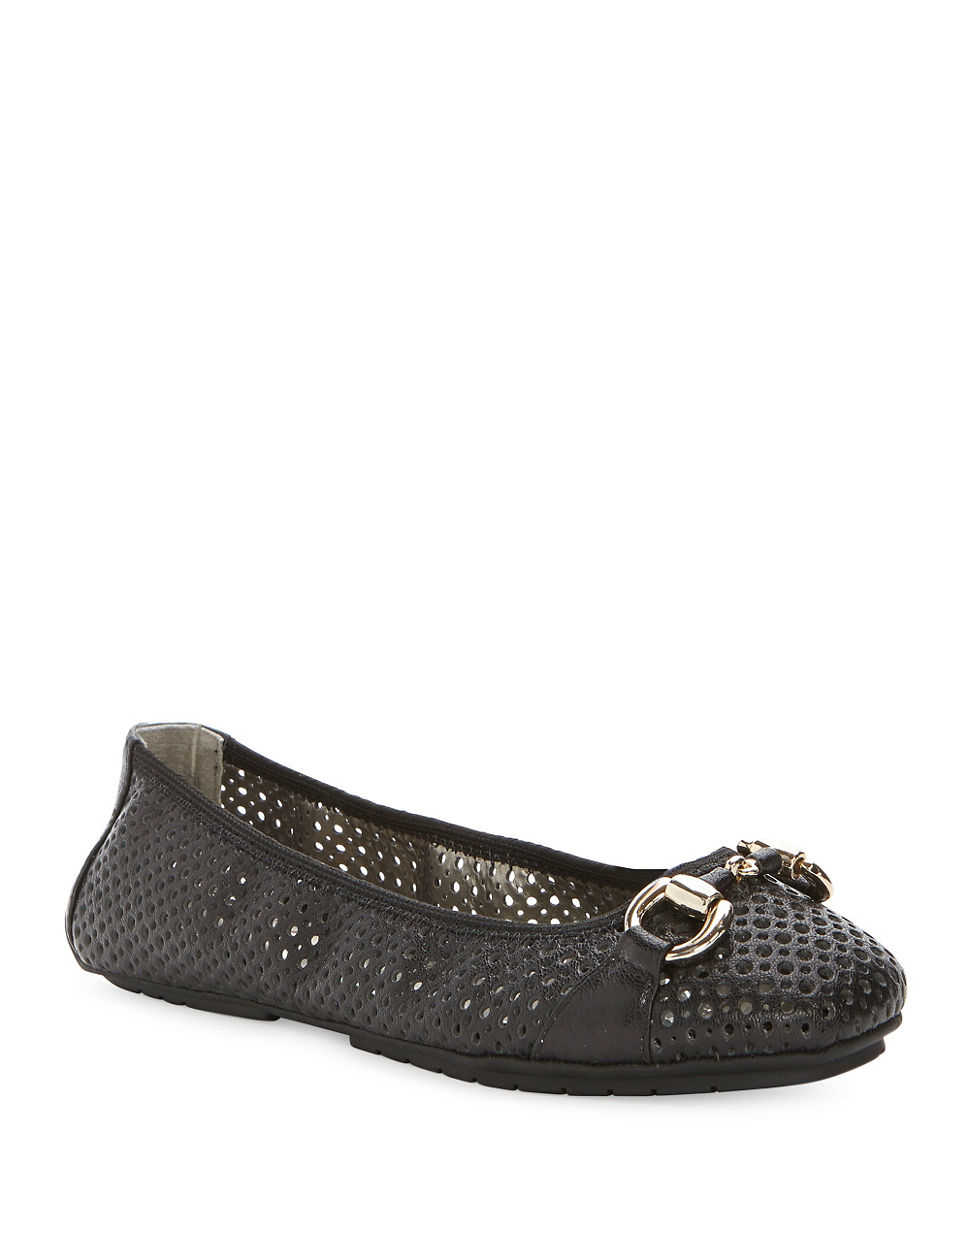 Lyst Me Too Lacey Leather Perforated Flats In Black